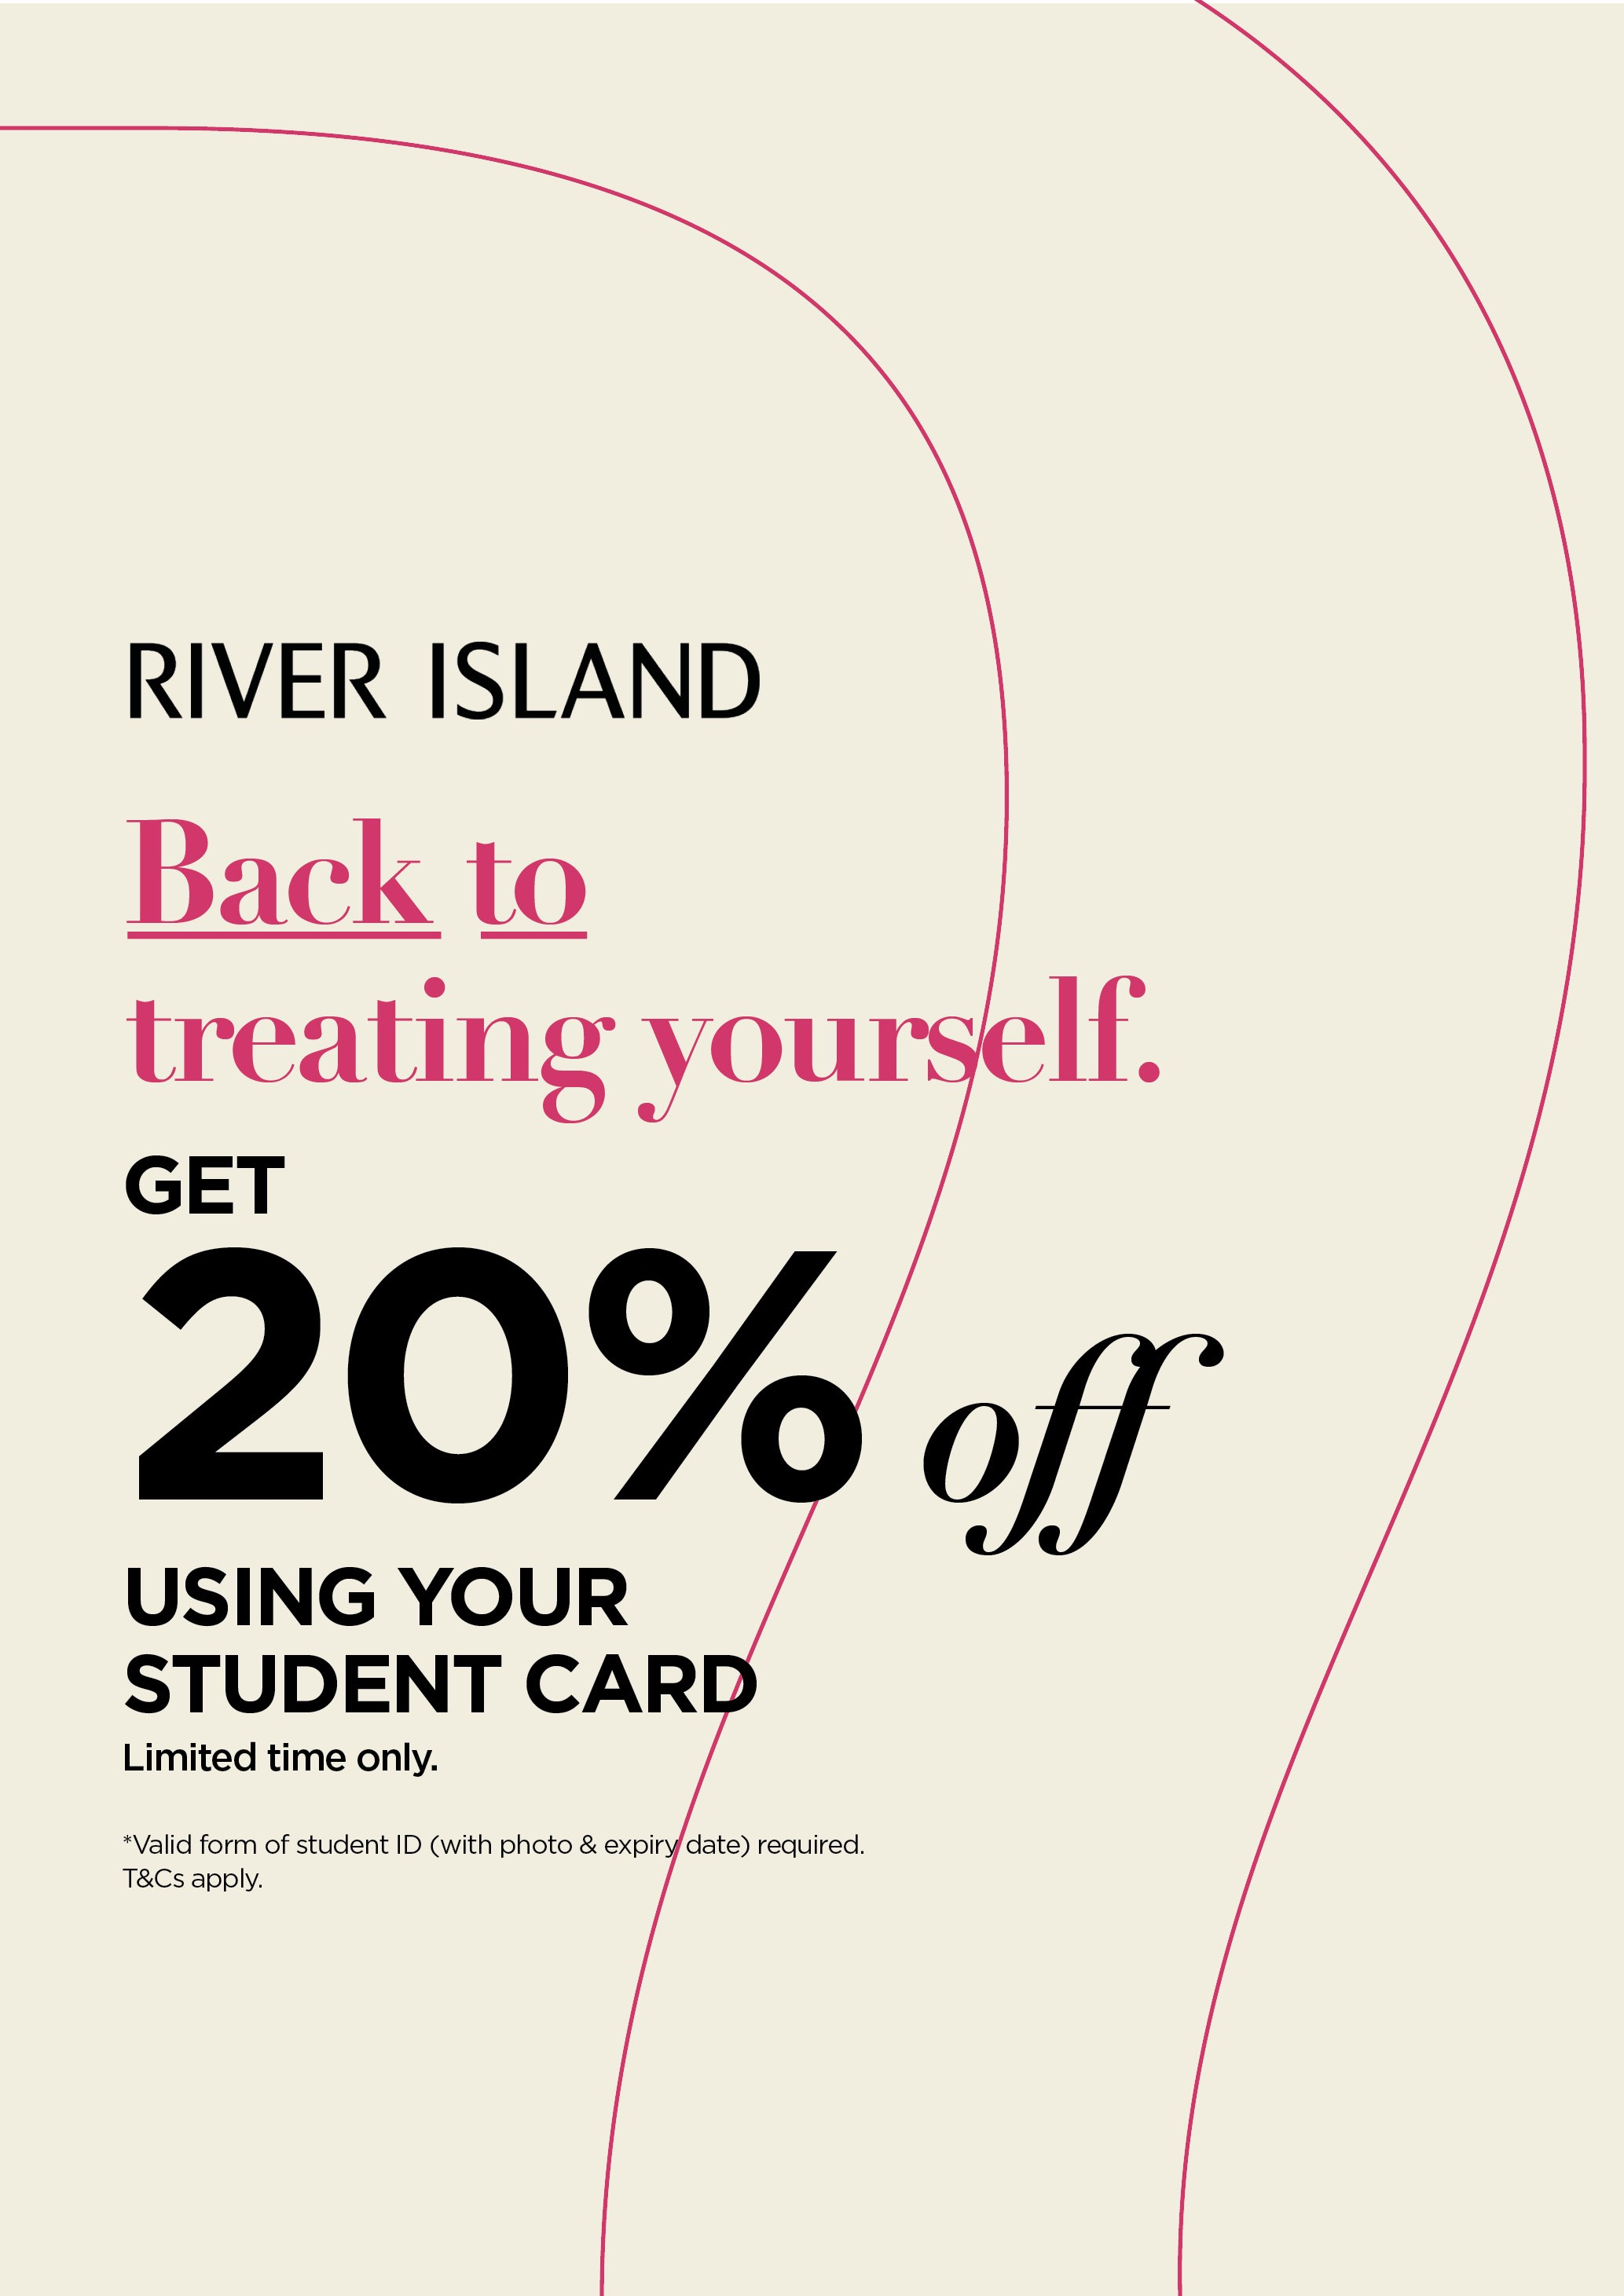 Get 20% off using your Student Card at River Island